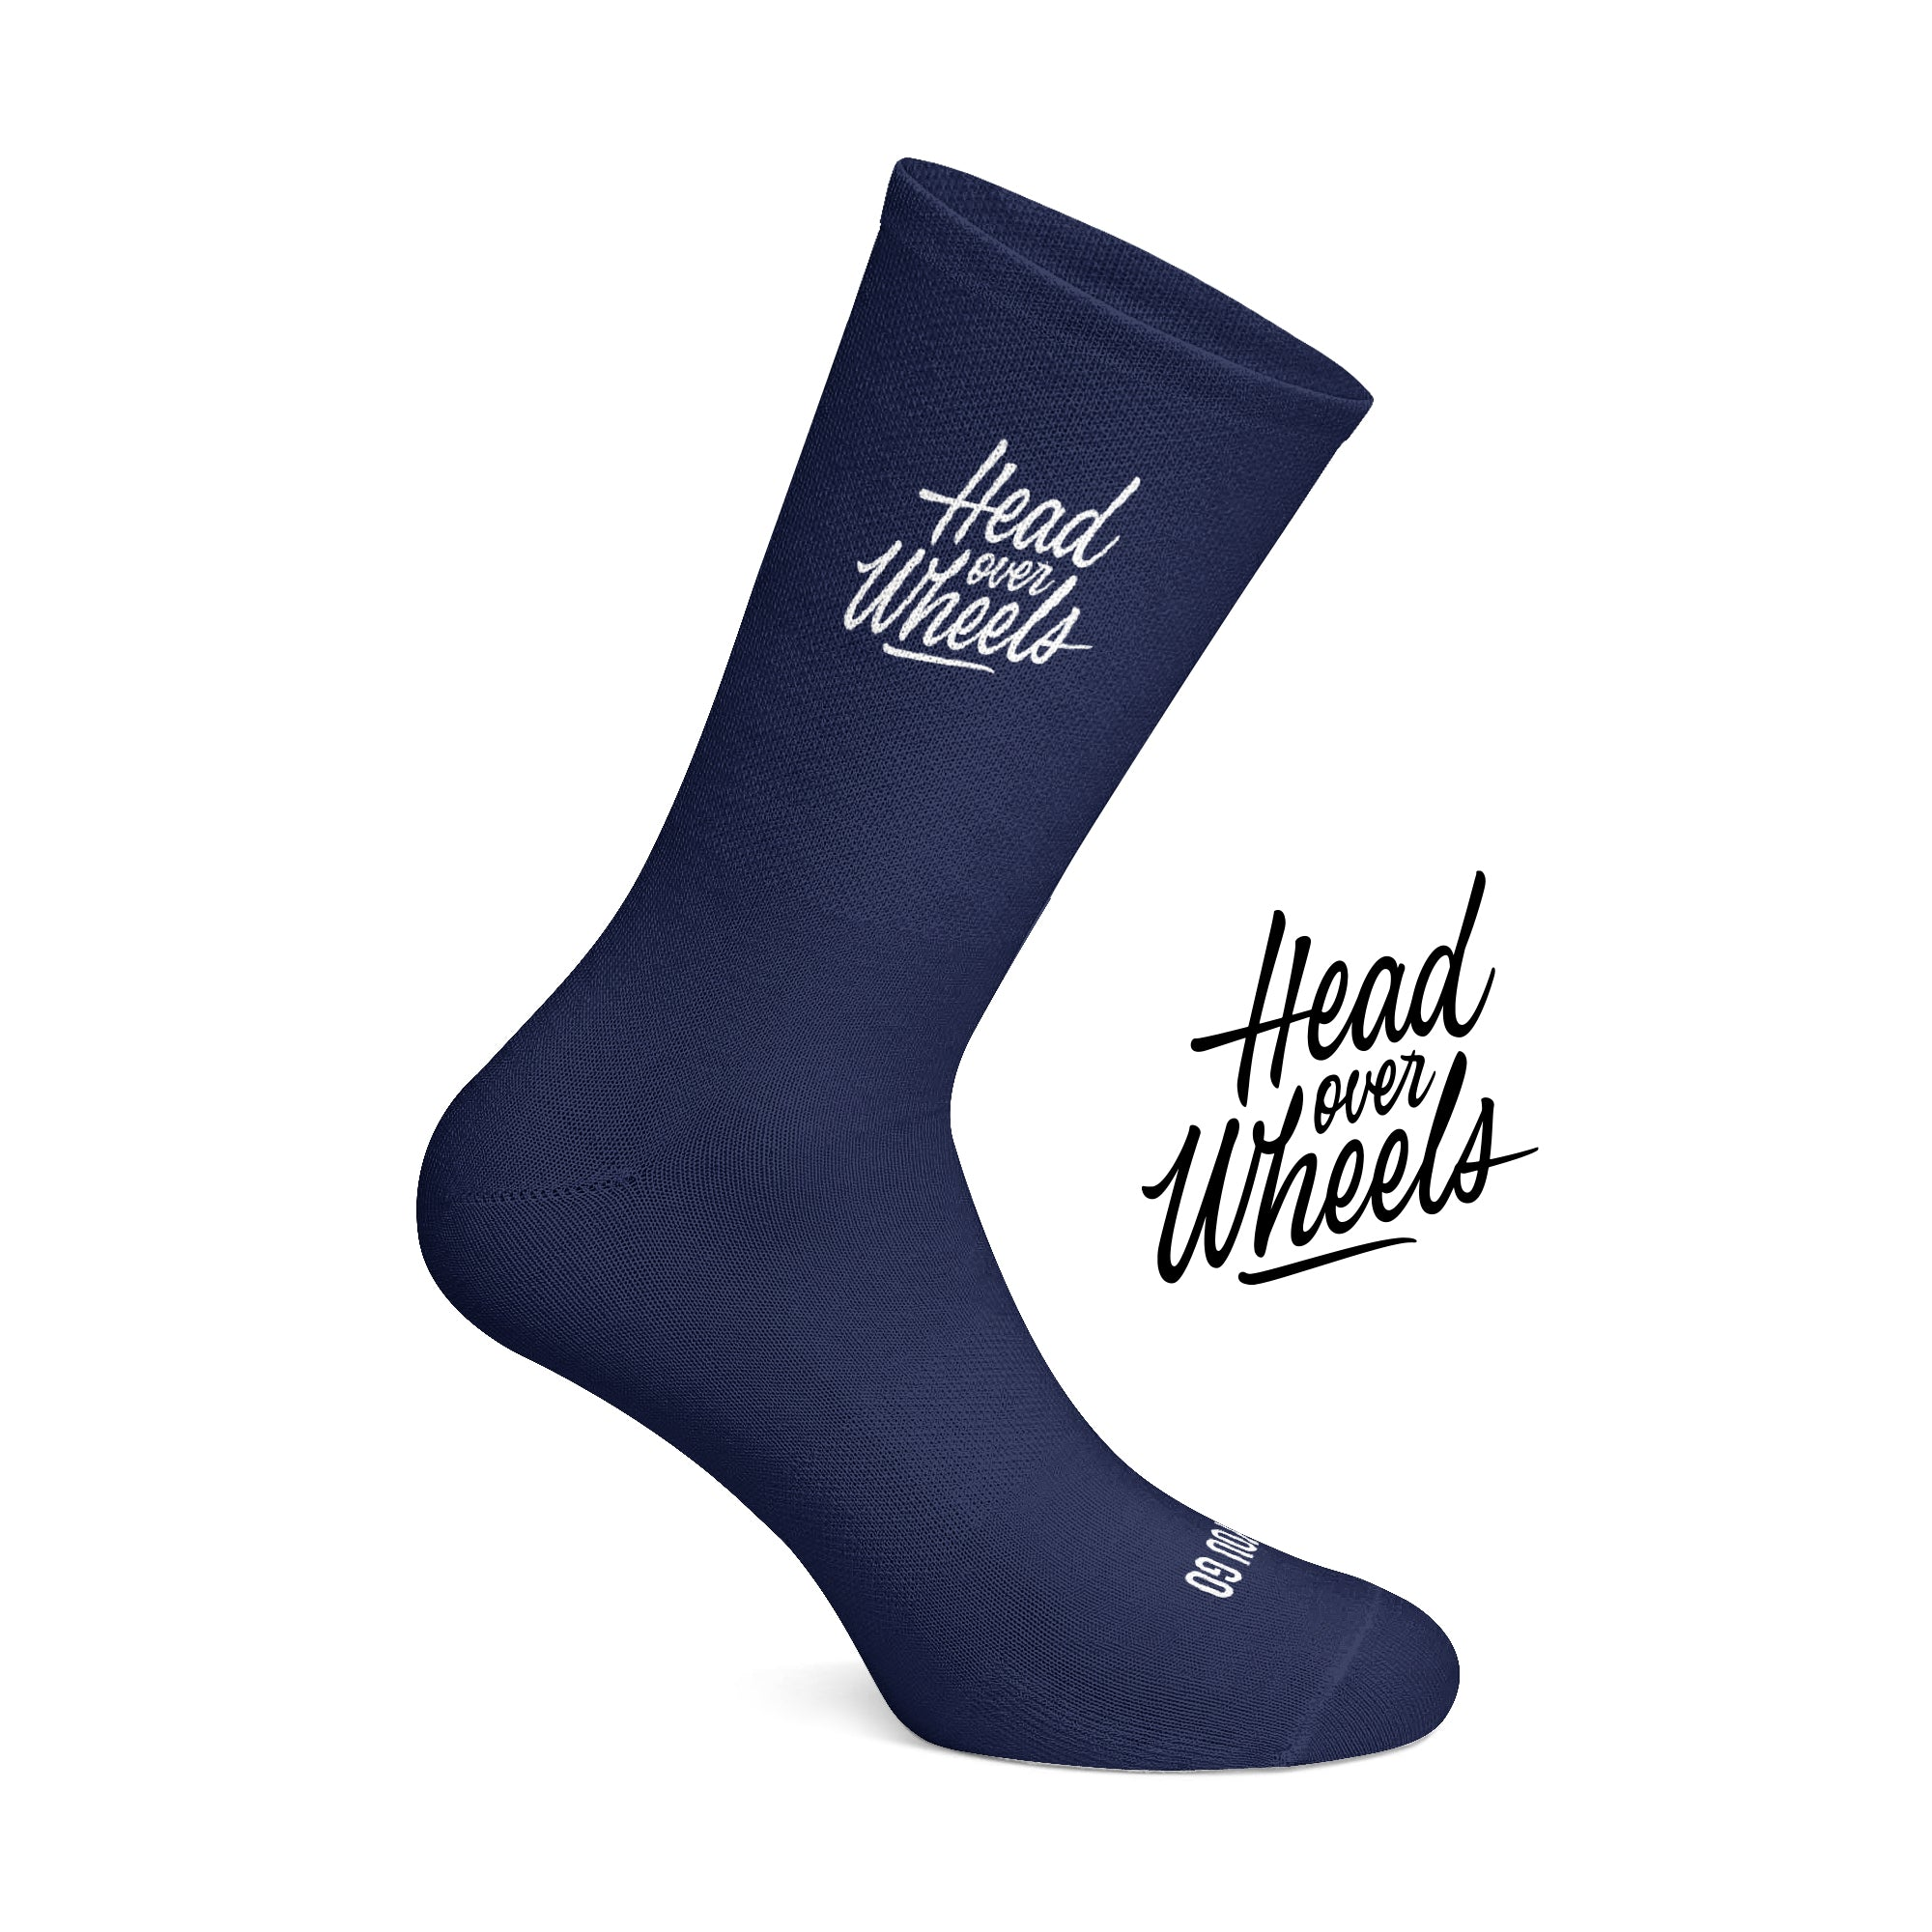 Head over Wheels cycling socks Navy